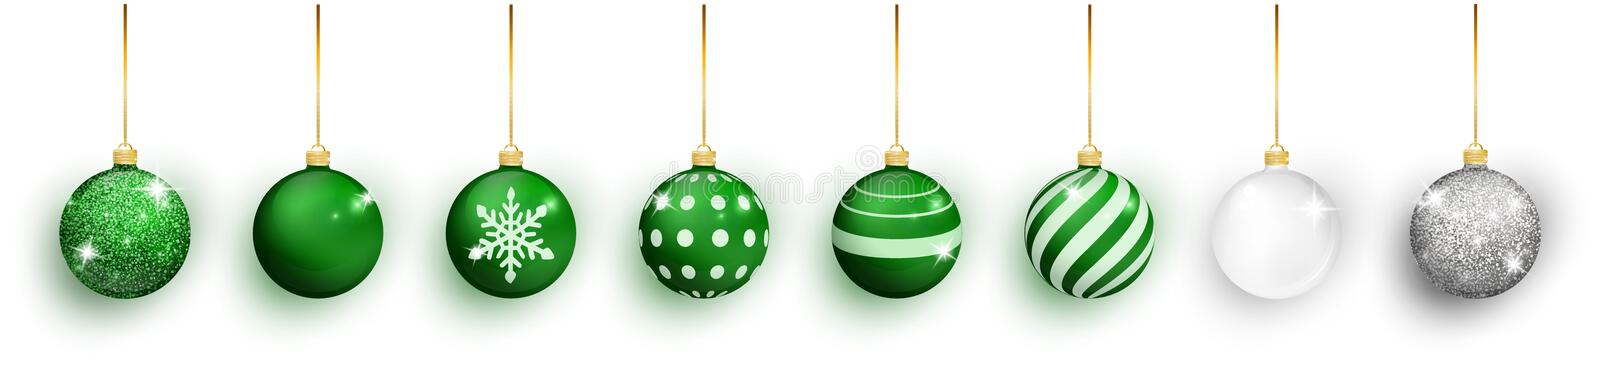 Green Christmas ball with snow effect set. Xmas glass ball on white background. Holiday decoration template. Green vector illustration